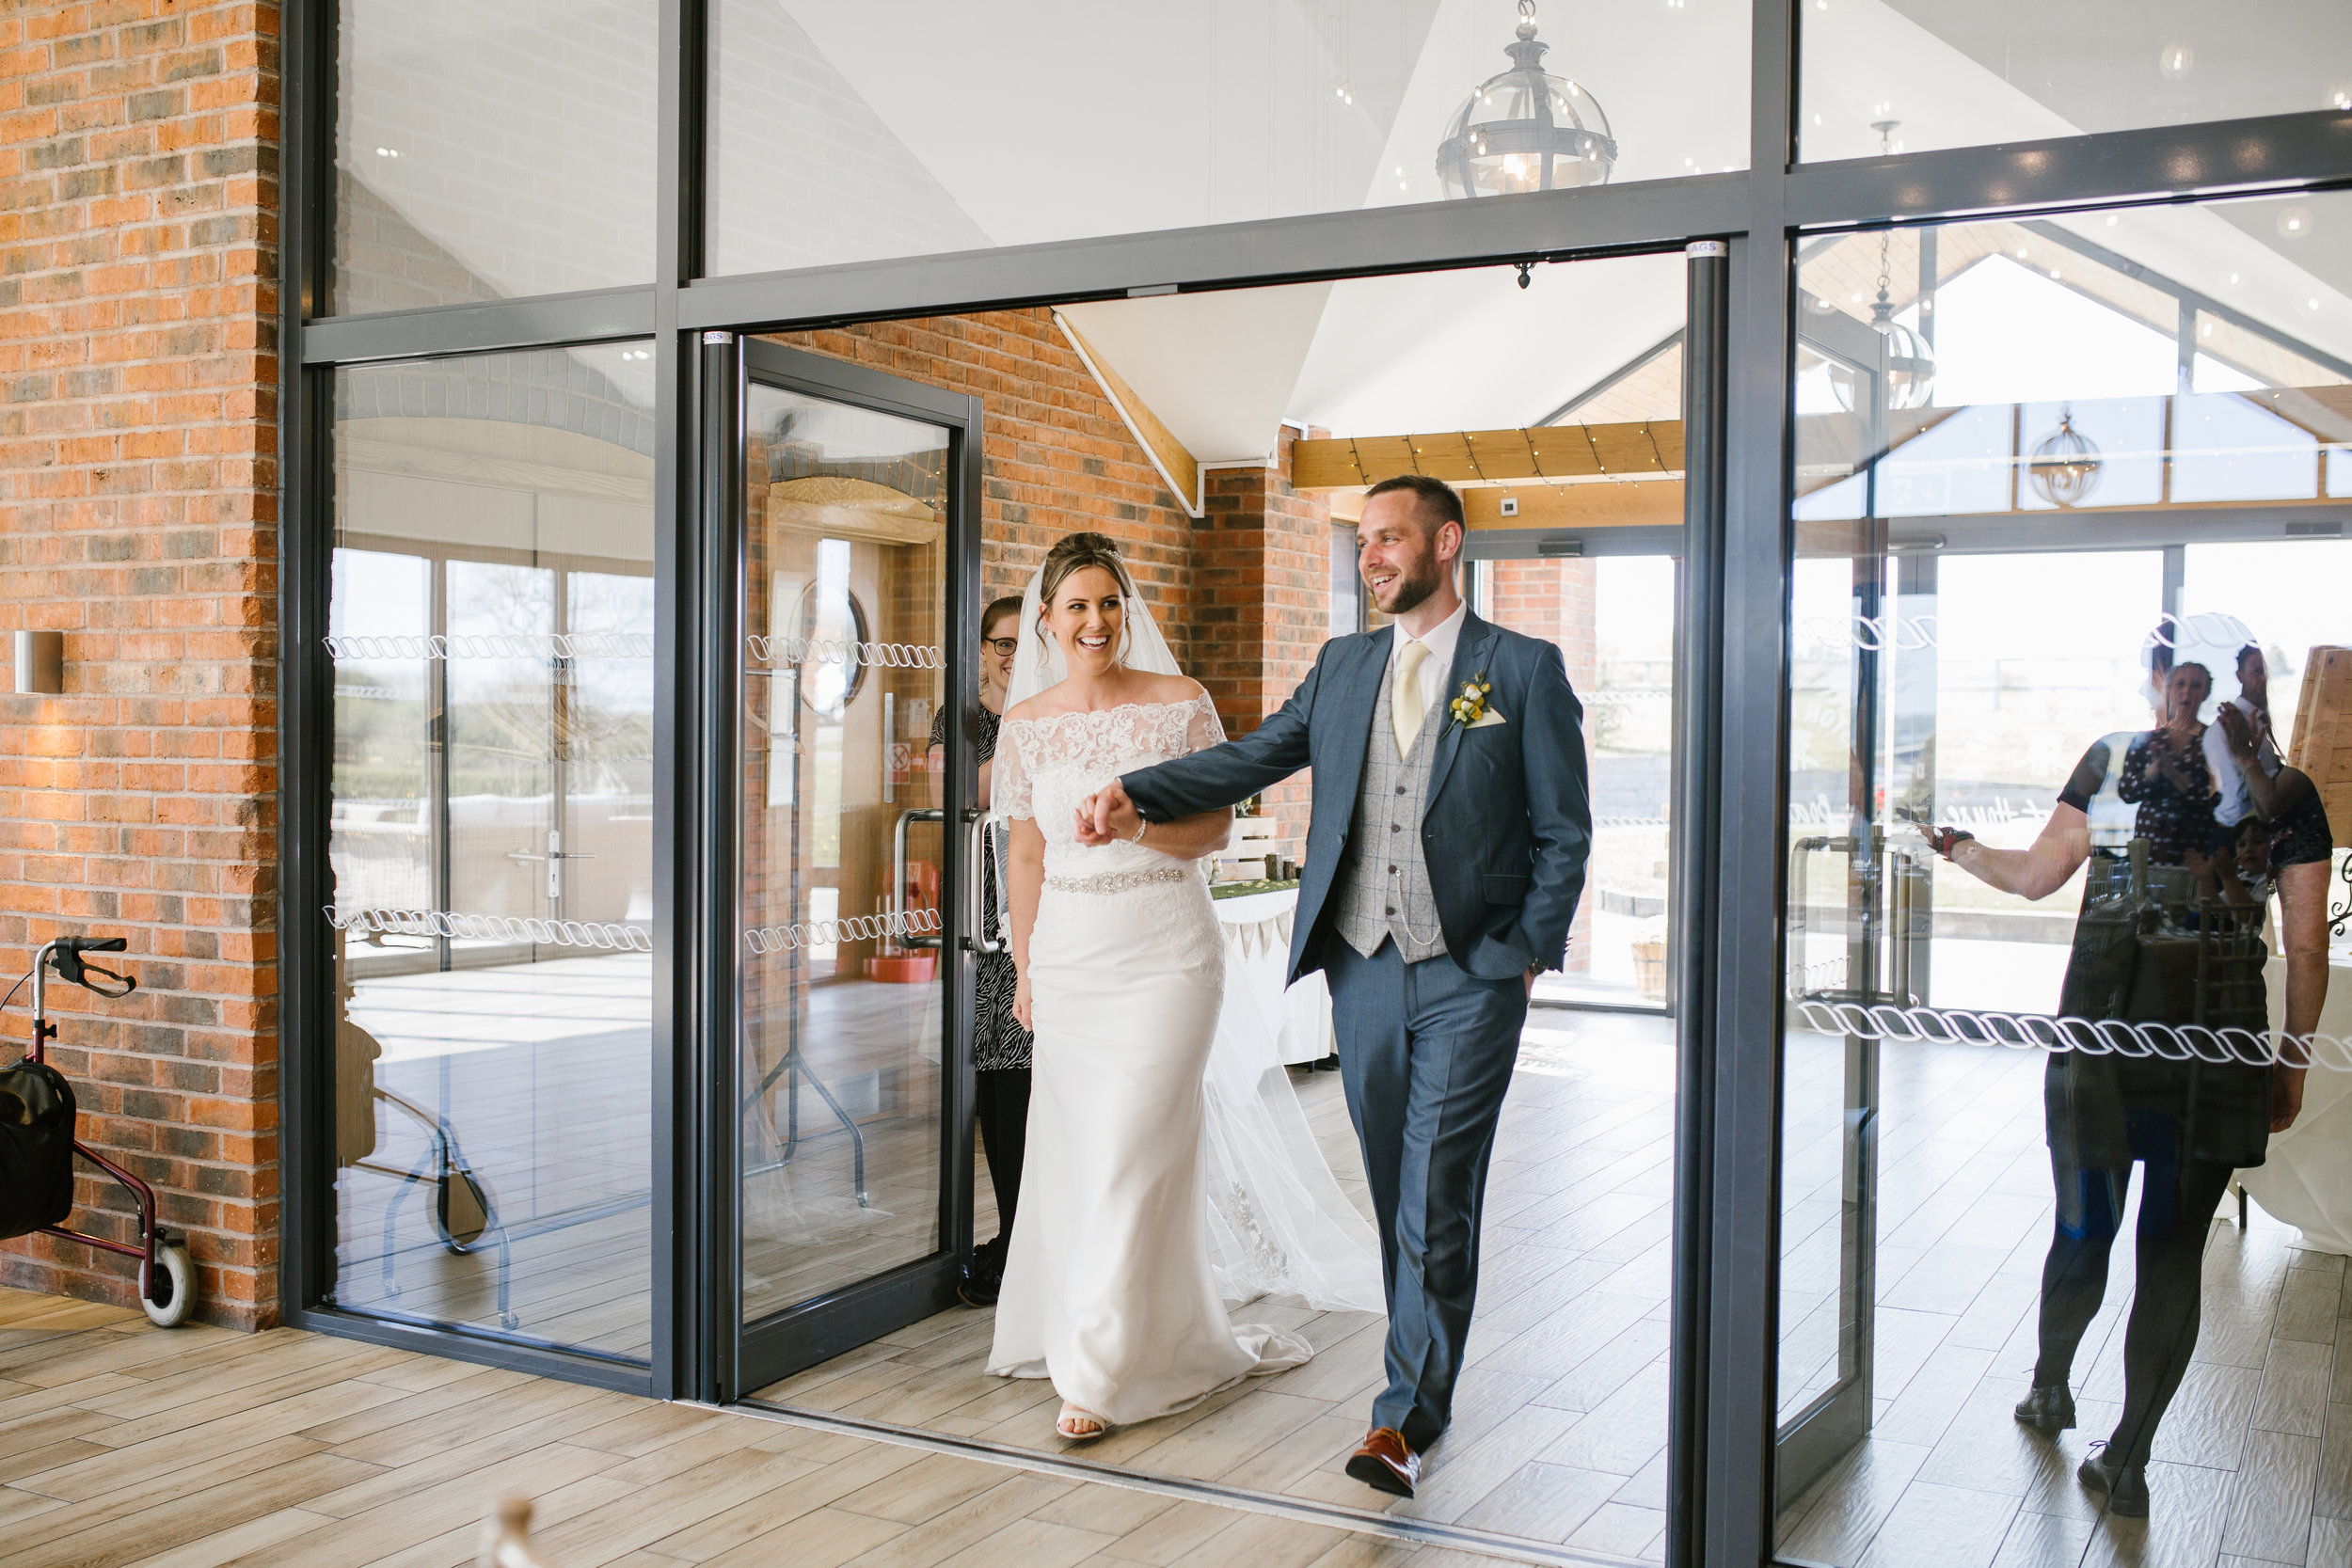 bride and groom make an entrance into the wedding breakfast and get cheered into the room by their guests